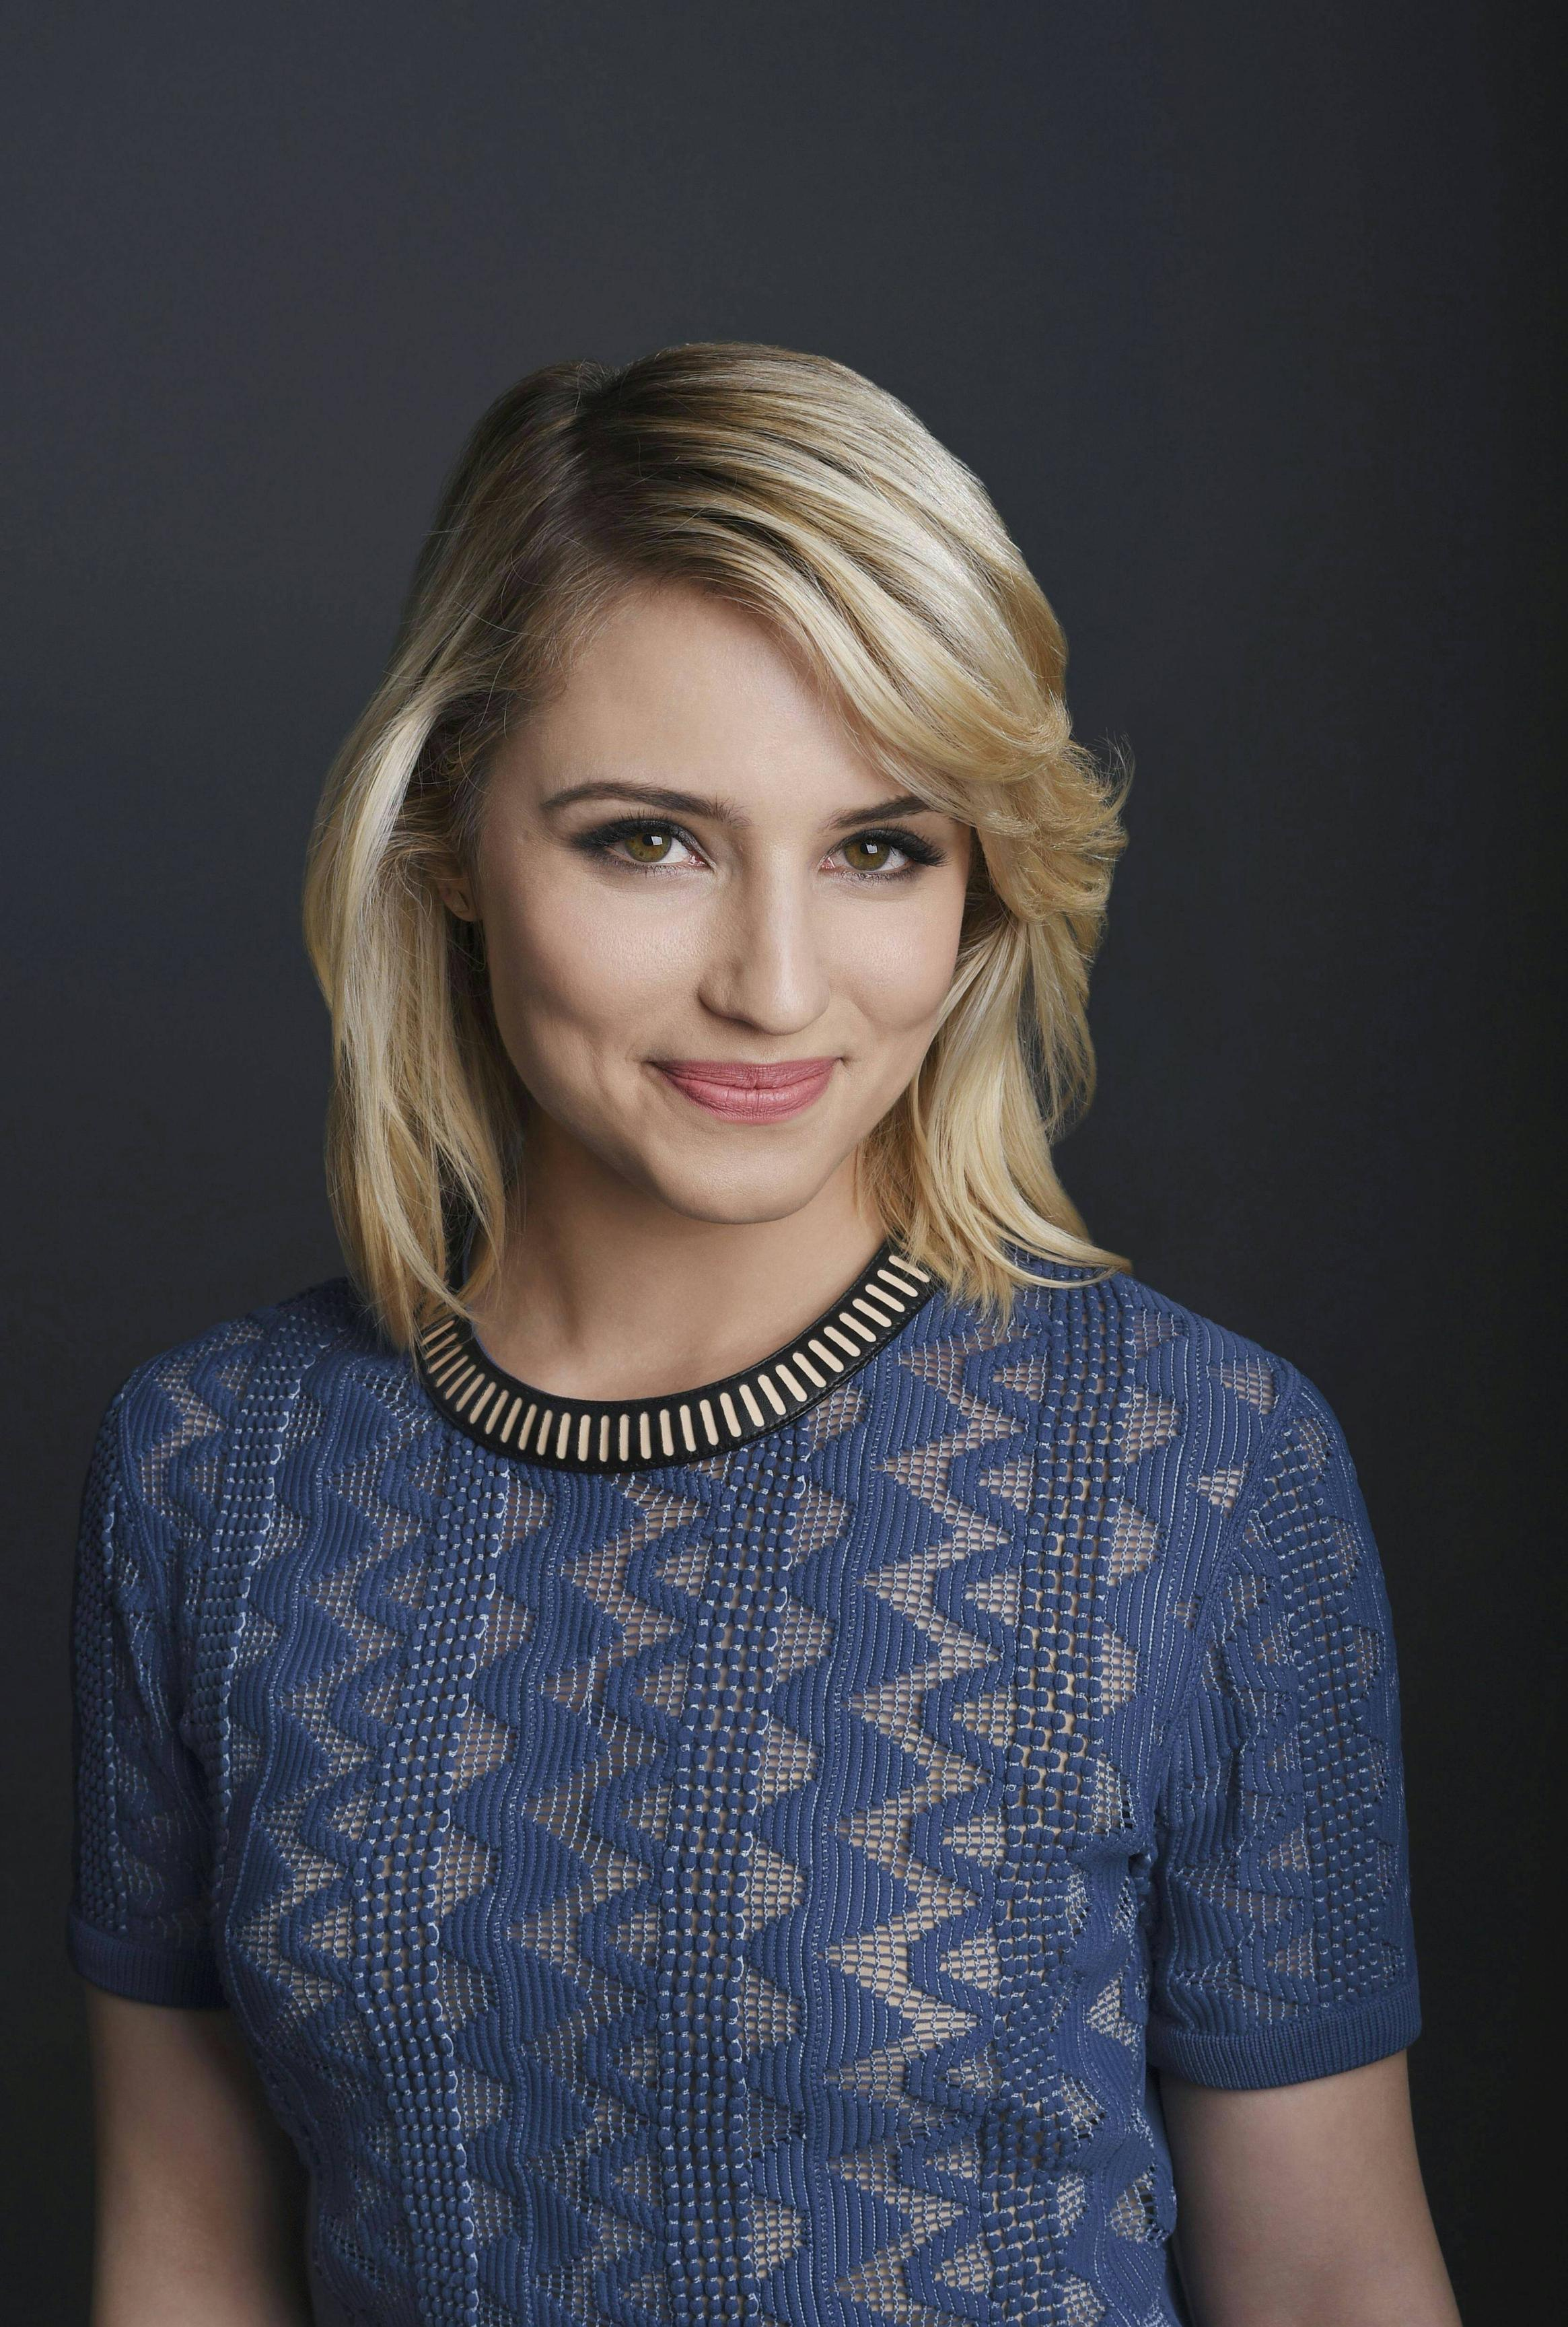 Dianna Agron Hot Look In Short Cloths Pictures Pics & Images